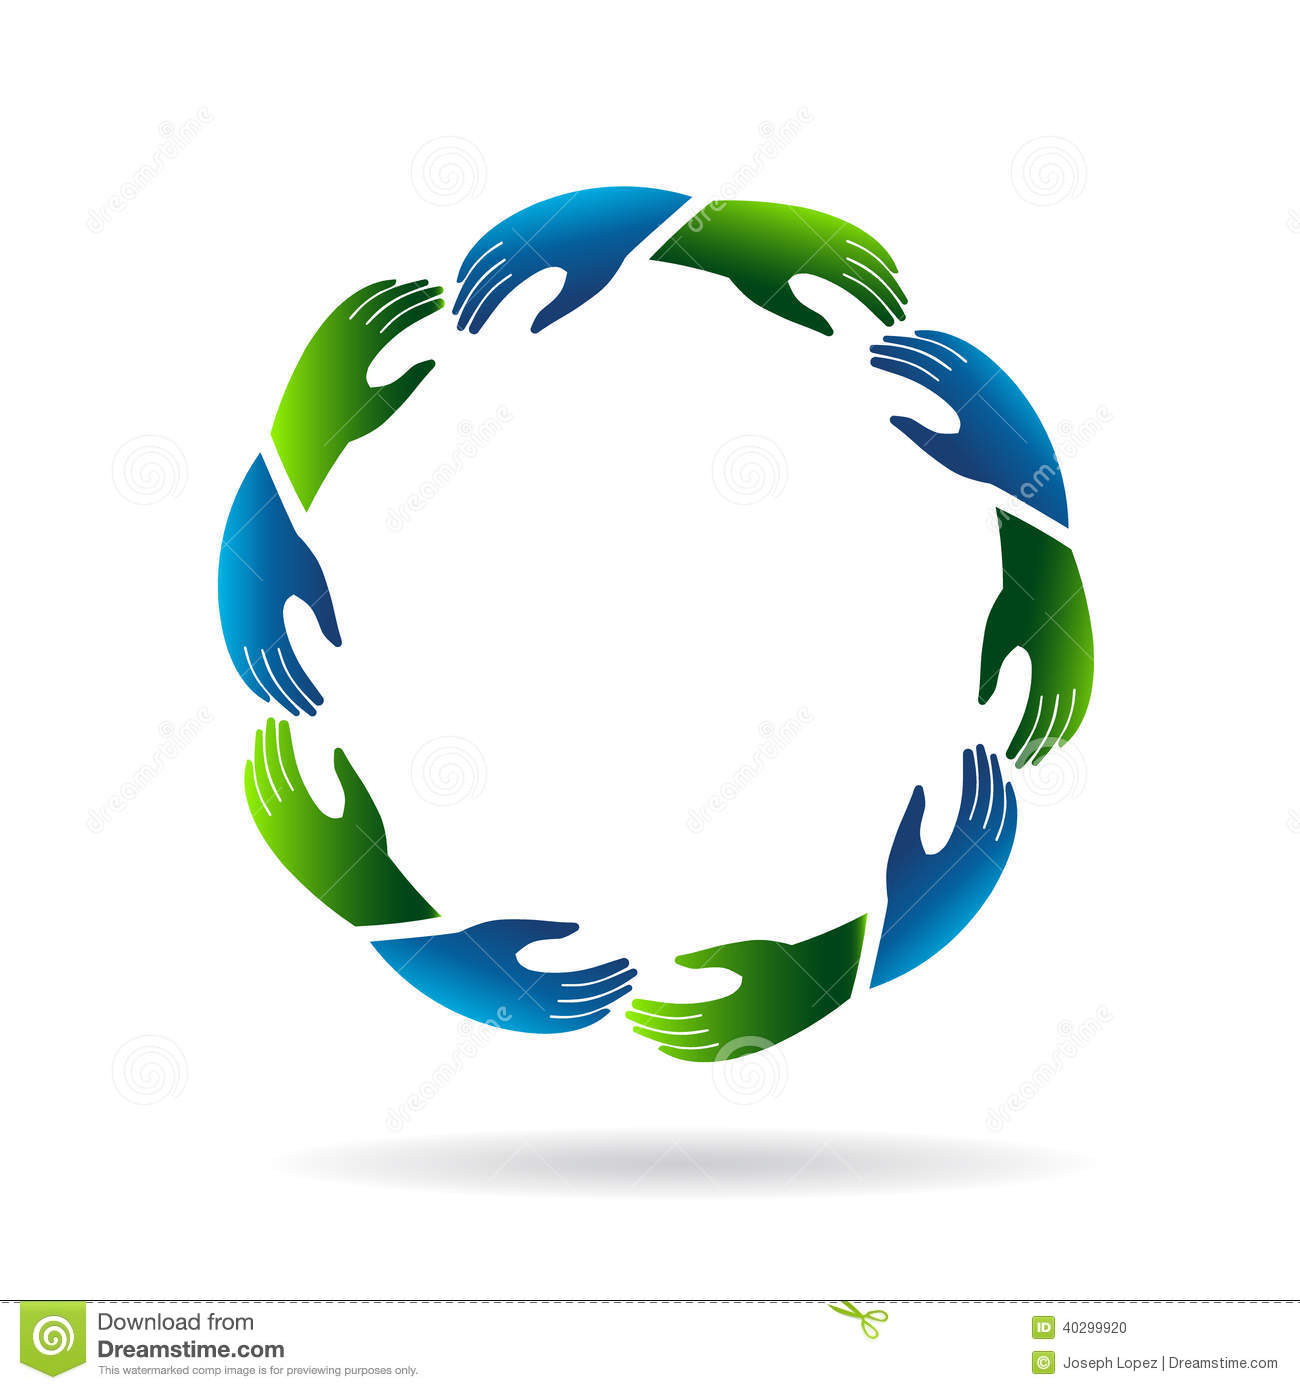 Hands reaching hands image logo. Concept of teamwork, unity,community ...